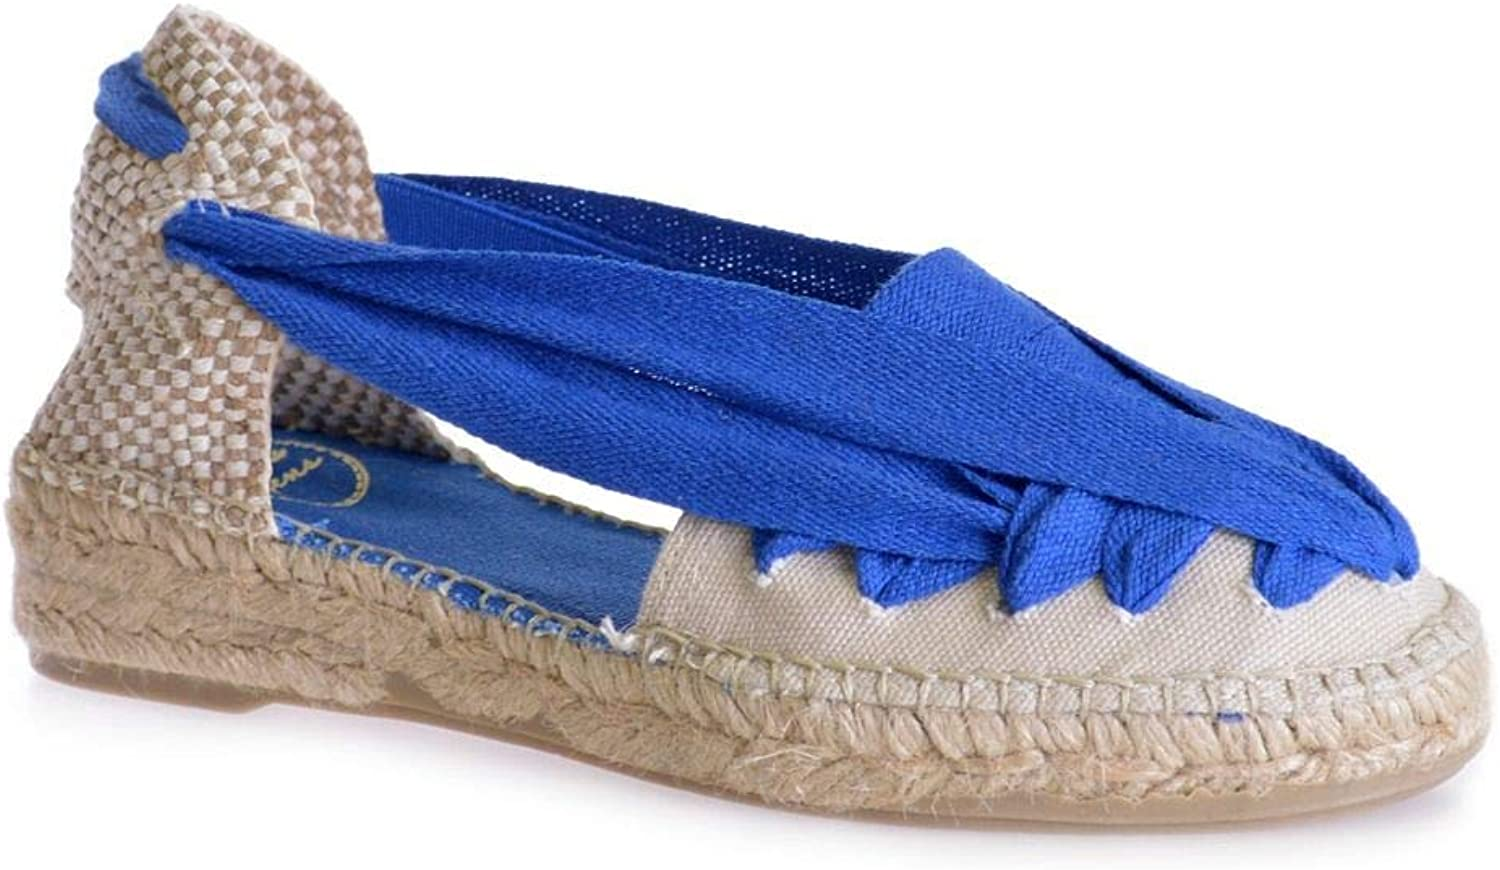 Toni Pons RUPIT - Vegan Espadrille for Woman Made in Fabric.